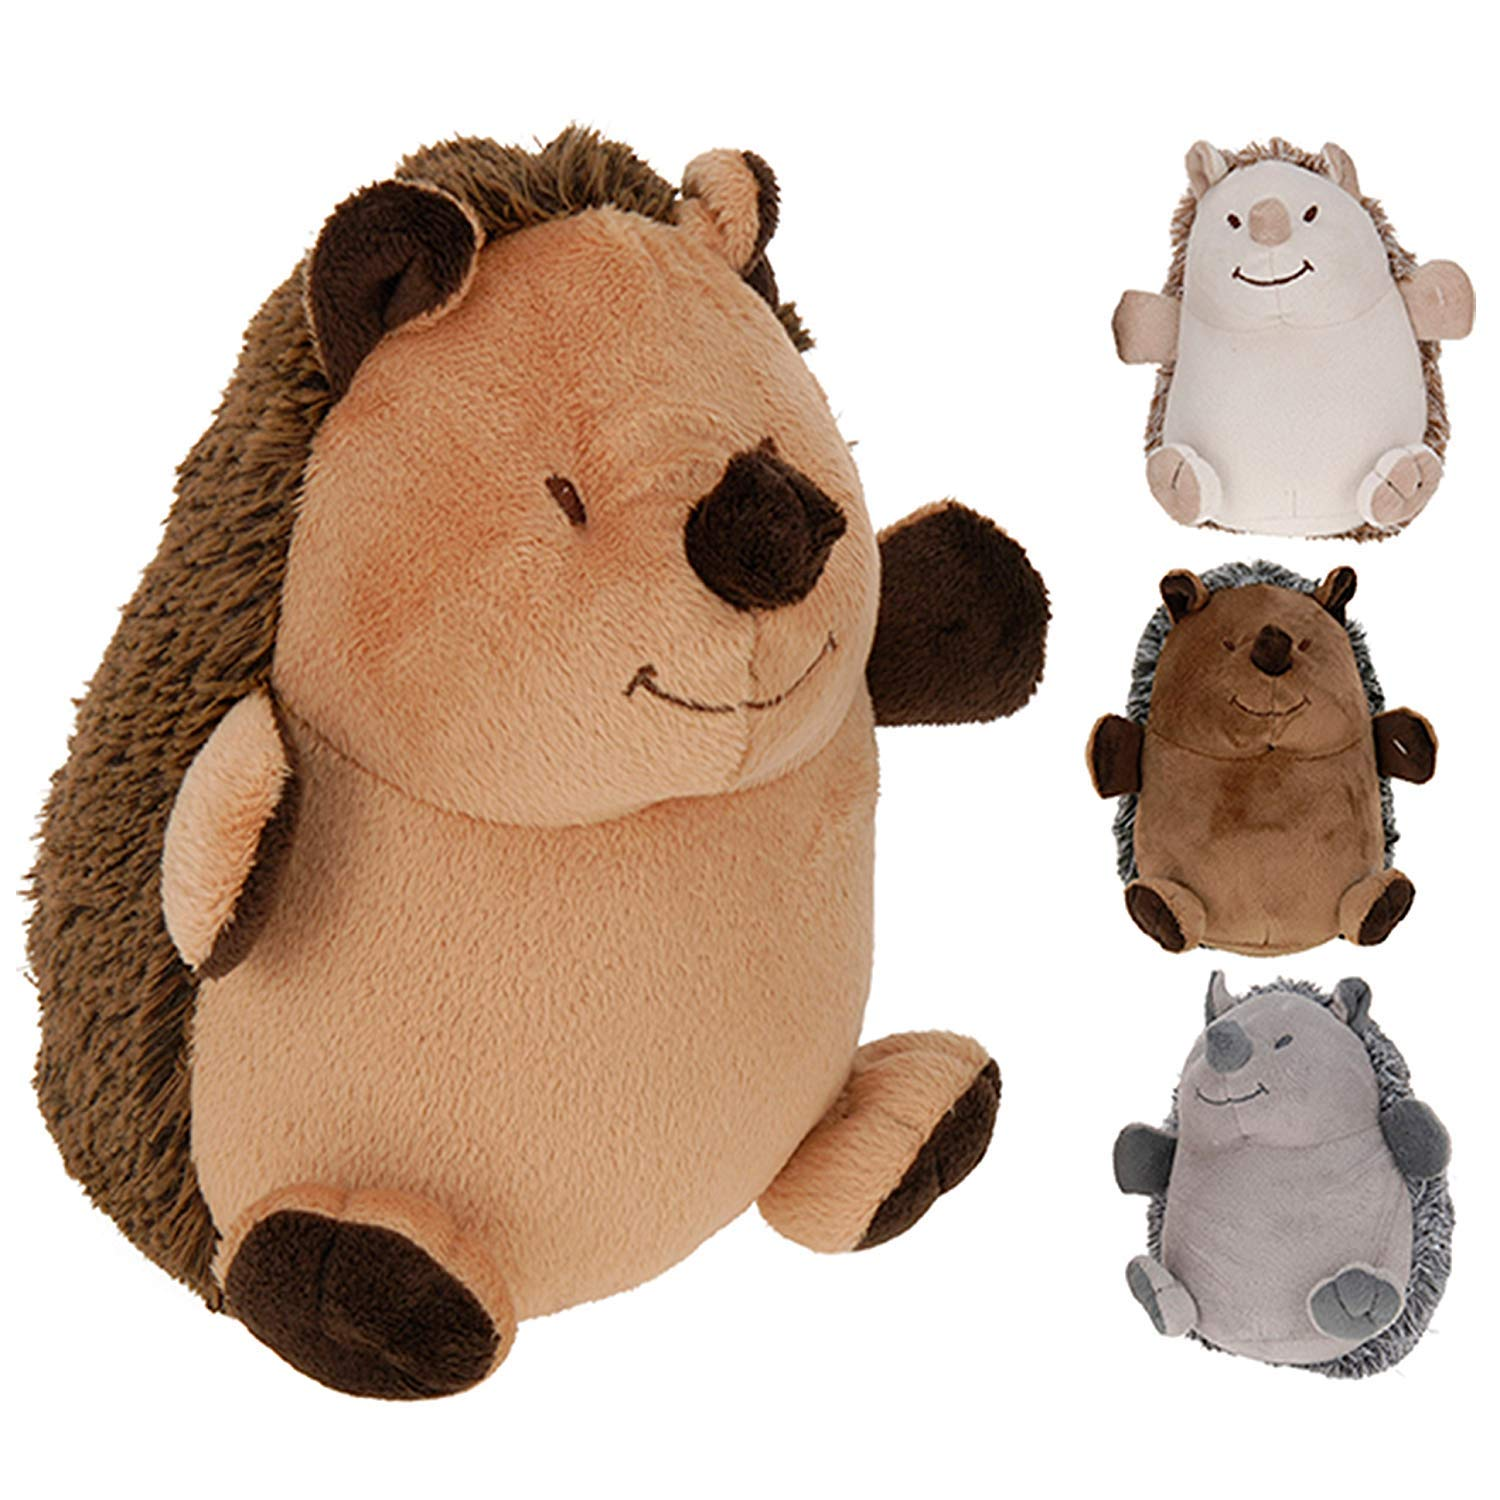 Door Stop Hedgehog, Large 20 Centimeter Home Office Animal Doorstop